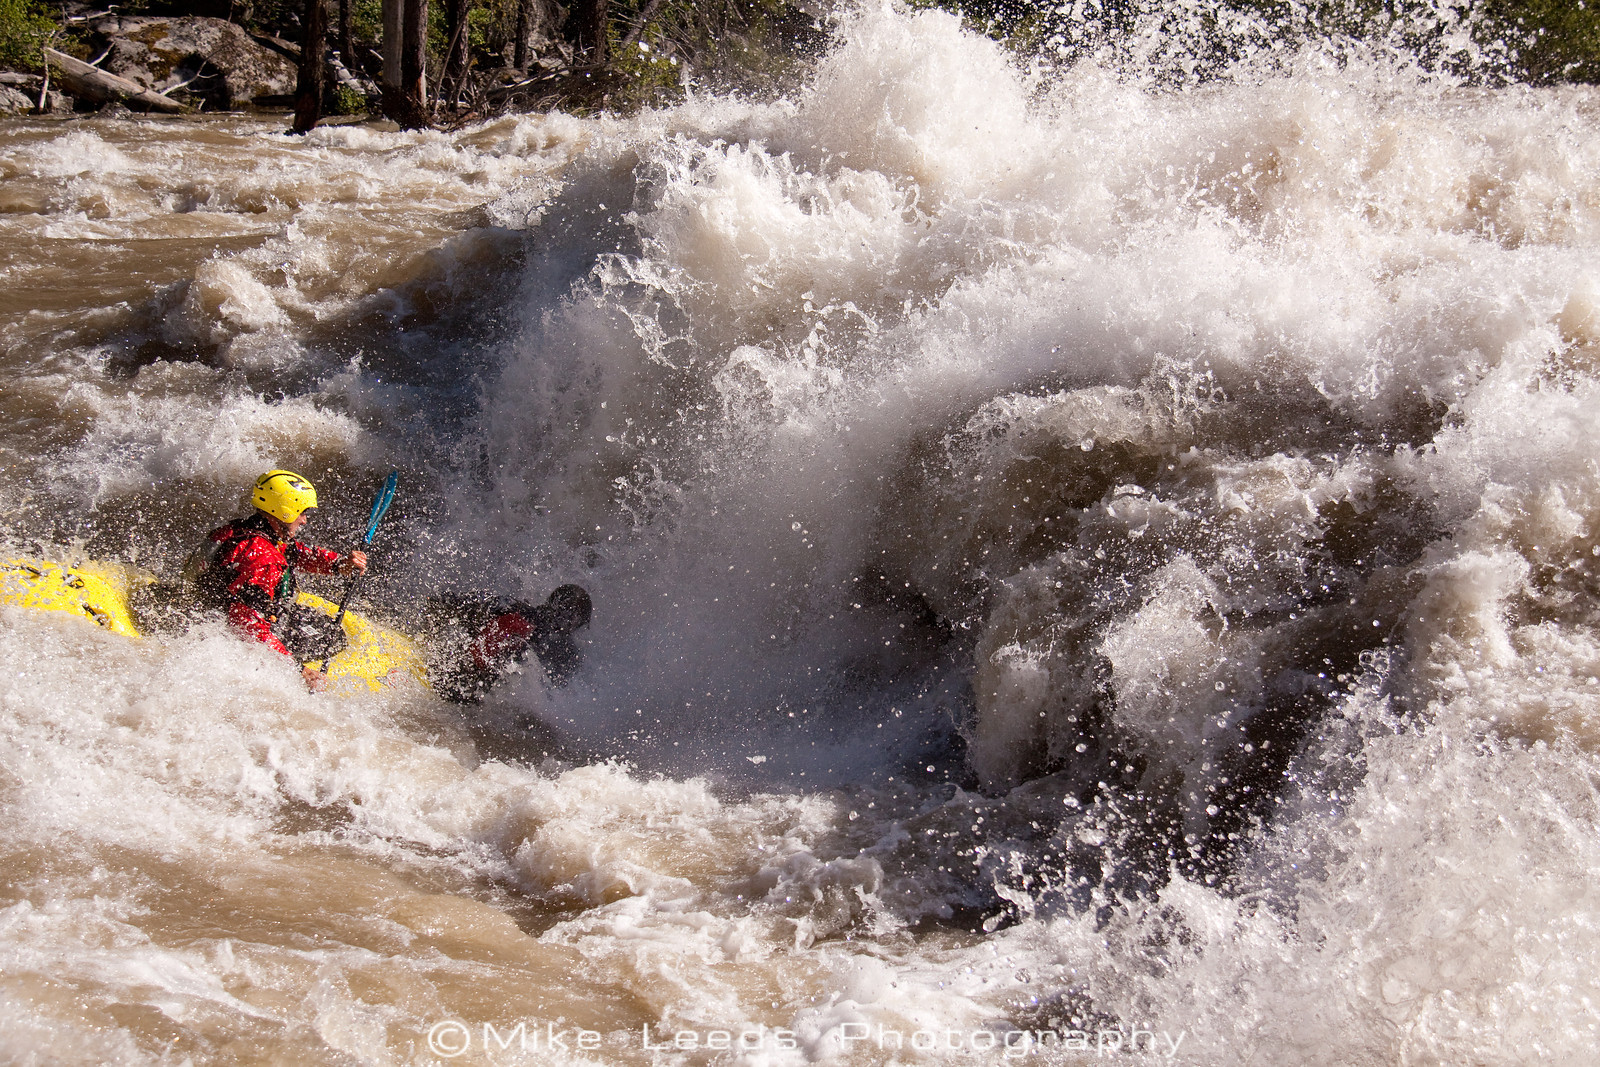 """Micah Kneidl and Tyler Allyn going big in class IV """"Slalom"""" rapid on the Lower S.F. Payette River around 10,000cfs. They are paddling a two person hardshell kayak. Tyler got sucked clean out of the boat leaving his spray deck still attached to the boat, forcing Micah to swim. Good times around Banks Idaho!"""